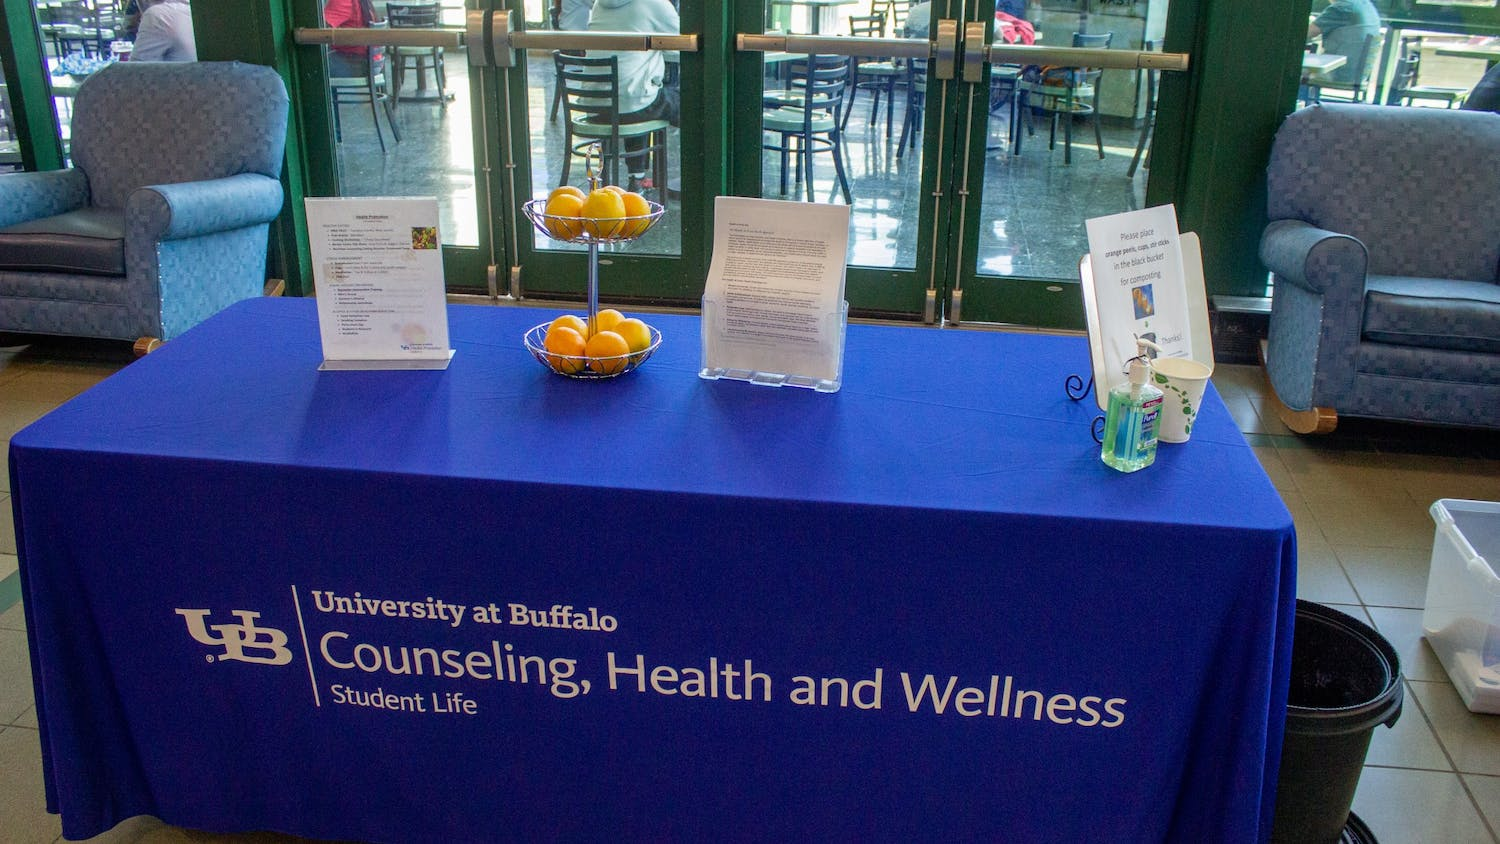 A Counseling, Health and Wellness booth provides information on healthy living.